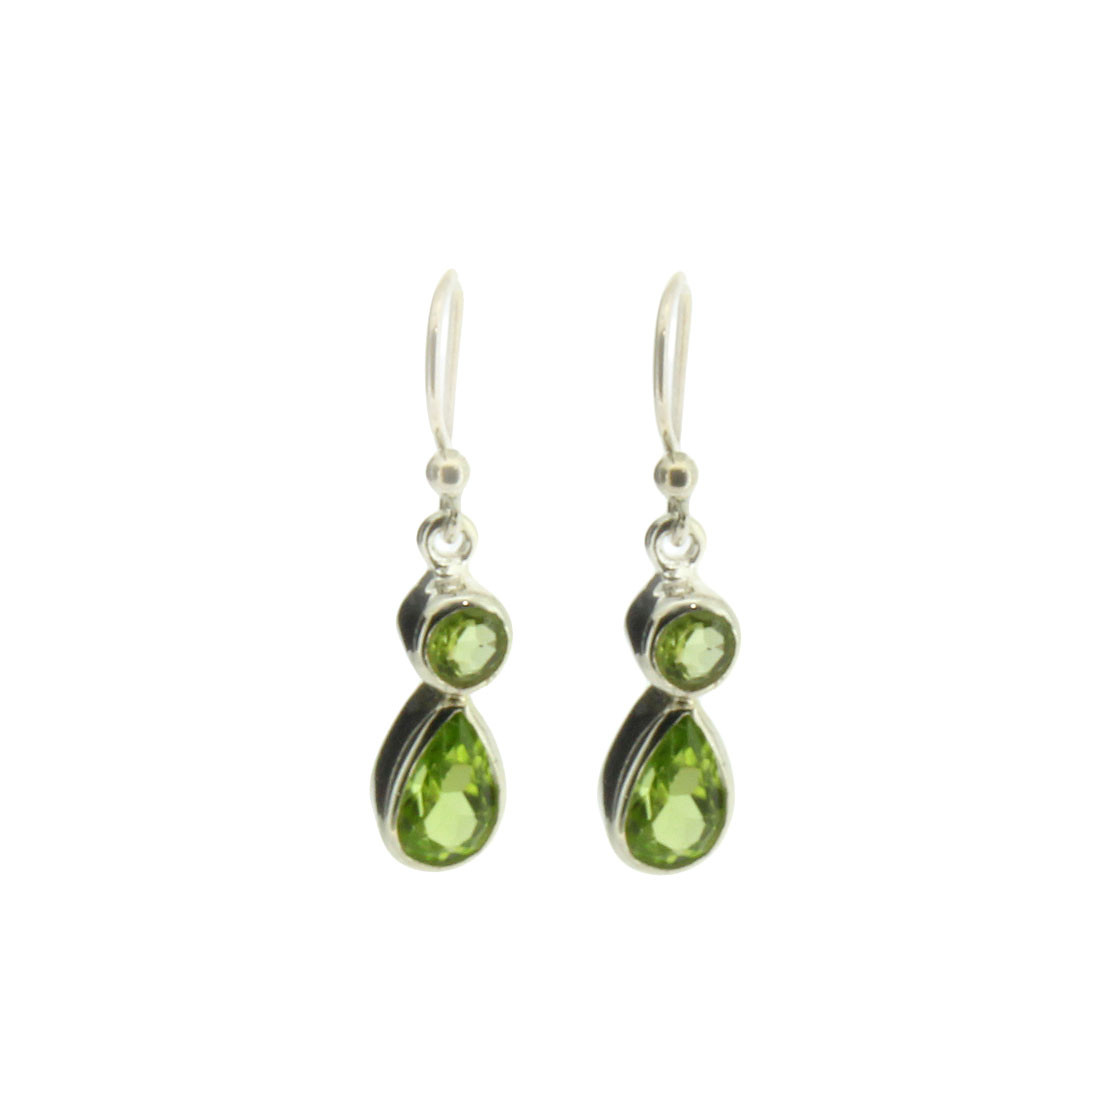 Small Faceted Green Peridot Dangle Earrings Sterling Silver